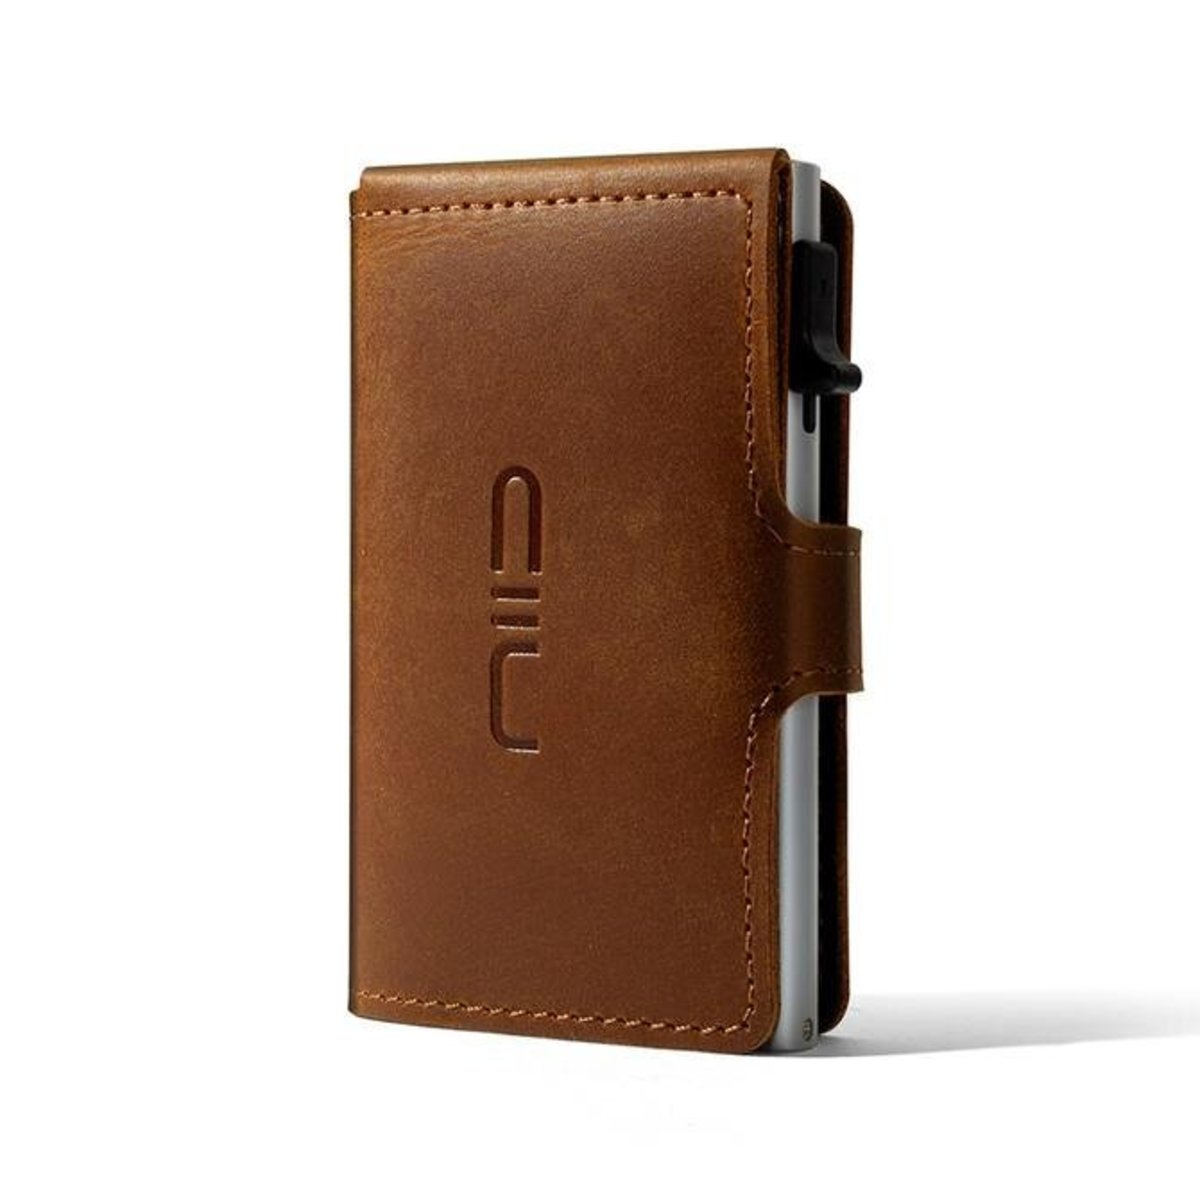 RFID Slide Mini Wallet Mad Horse Leather - Light Brown